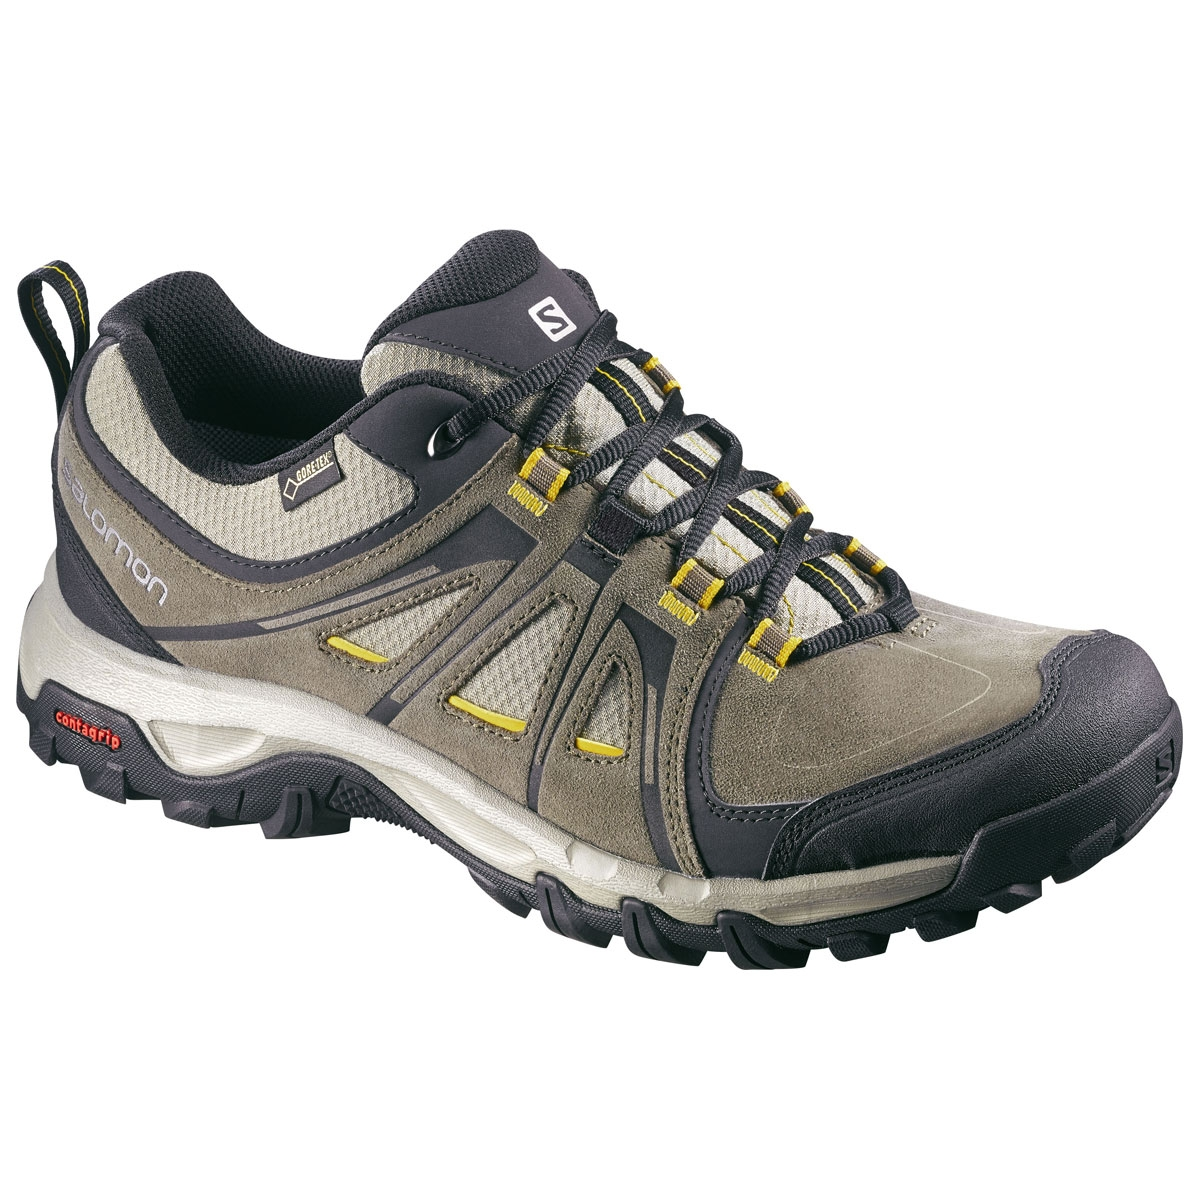 332a1c186a82 Image of Salomon Evasion GTX Walking Shoes (Men s) - Swamp Dark Titanium